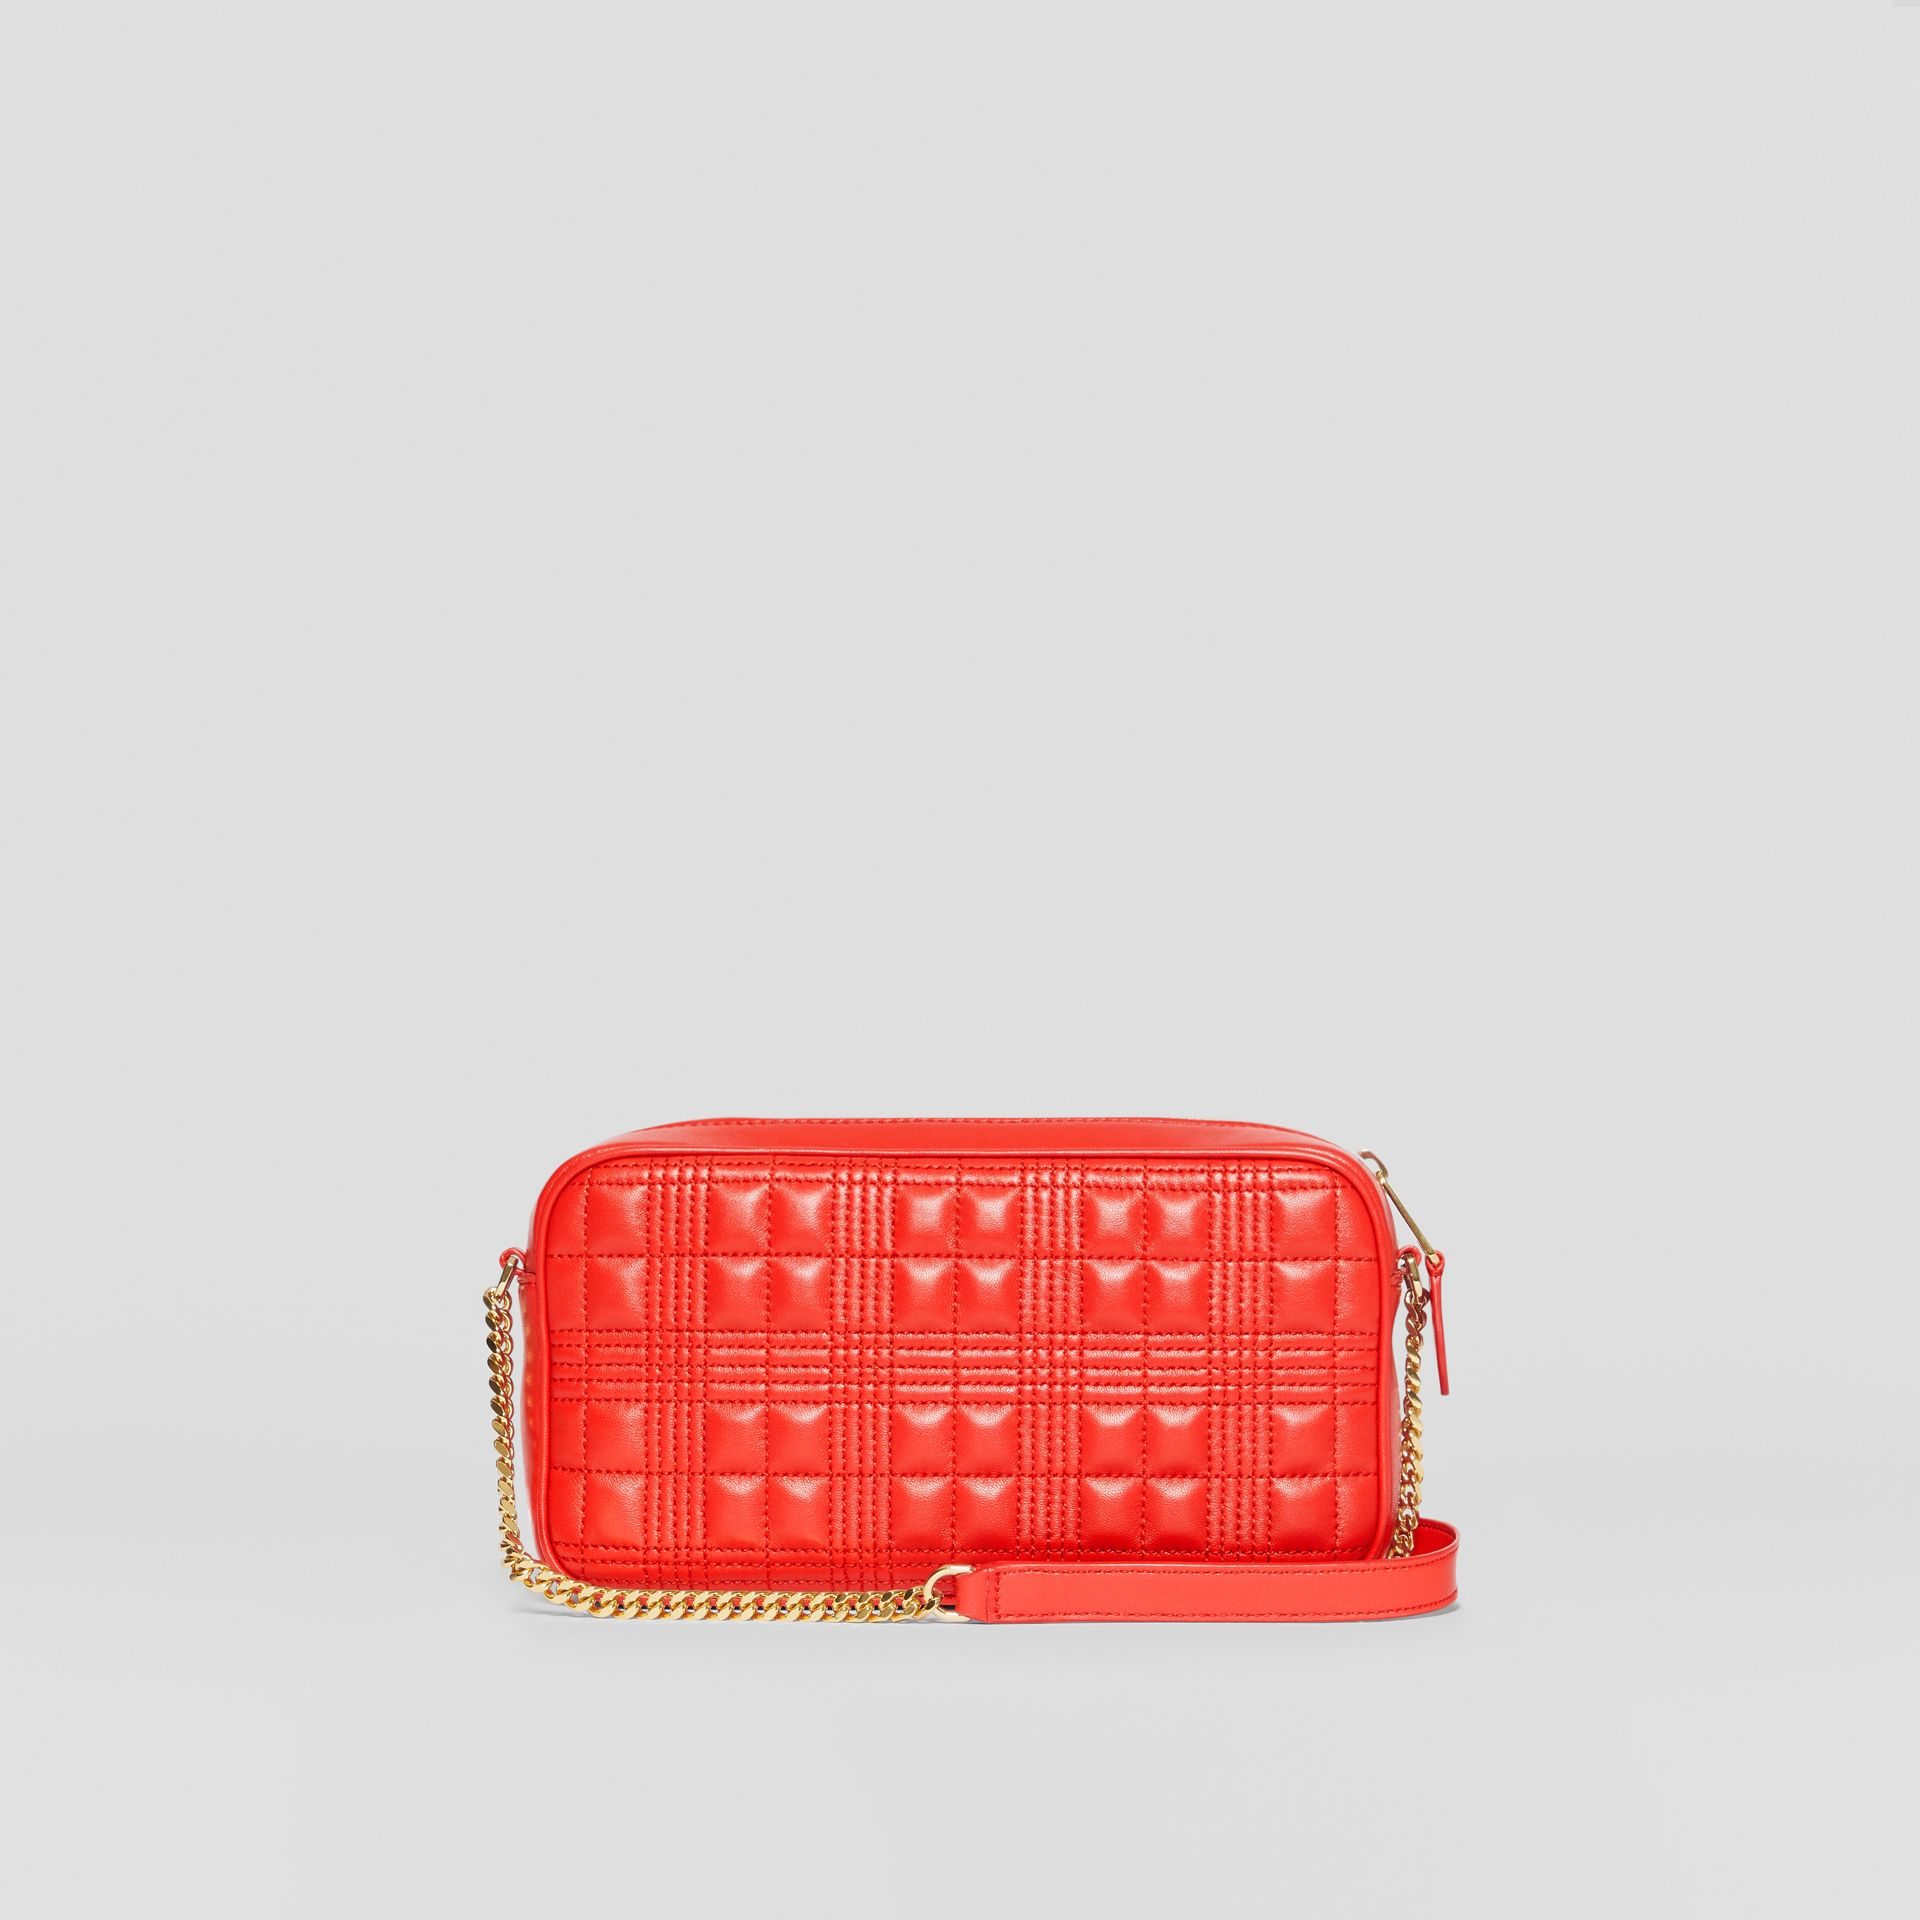 Quilted Check Lambskin Camera Bag in Bright Red - Women | Burberry - gallery image 7